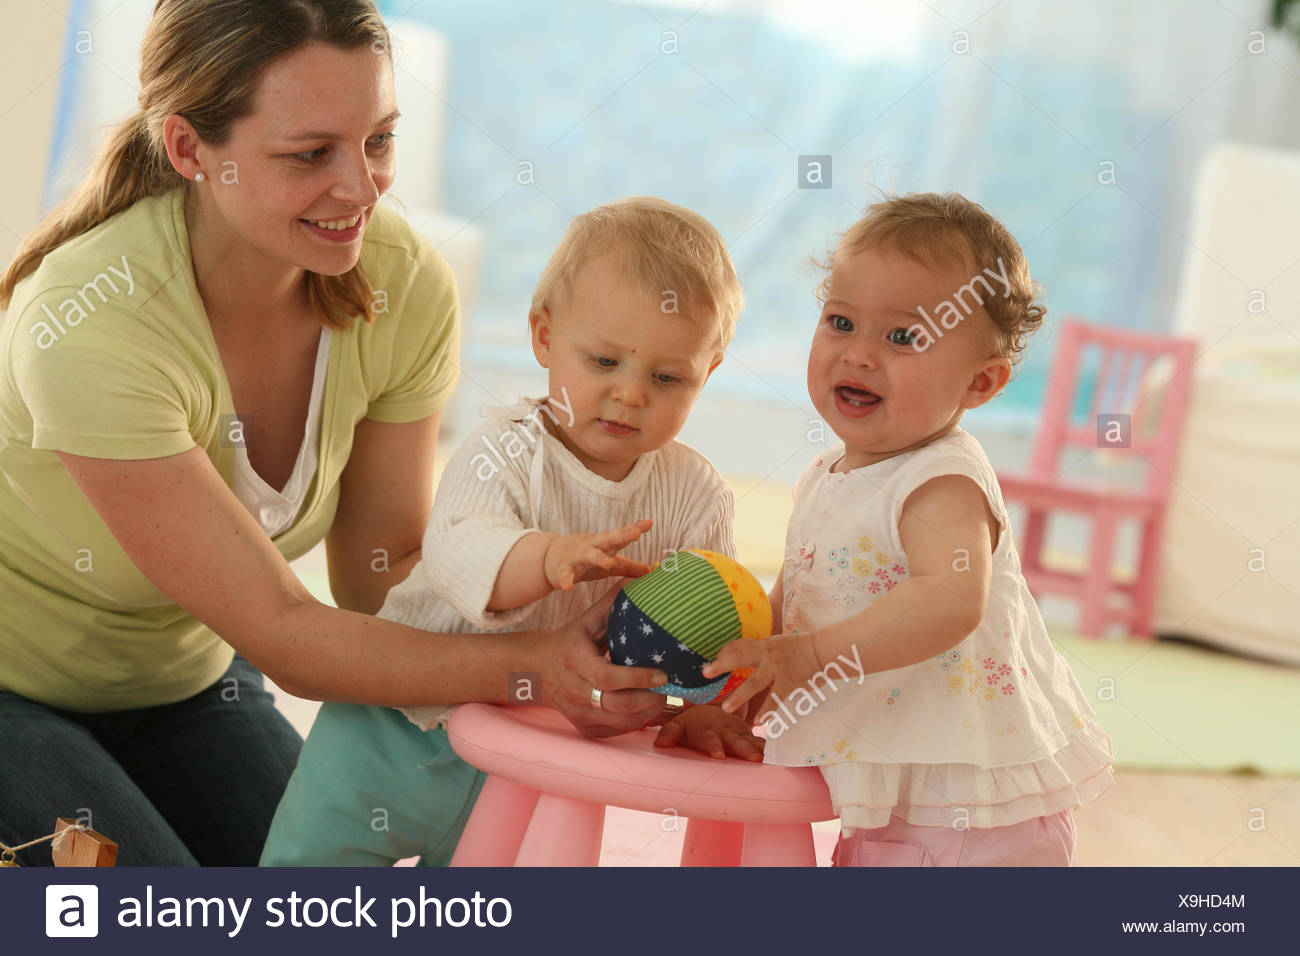 Babies, 9 months, mother, ball, play, toys, dress, blond, discoveries, friends, reach, group, Indoor, boy, person, woman, girl, fun, joy, footstool, smile, - Stock Image